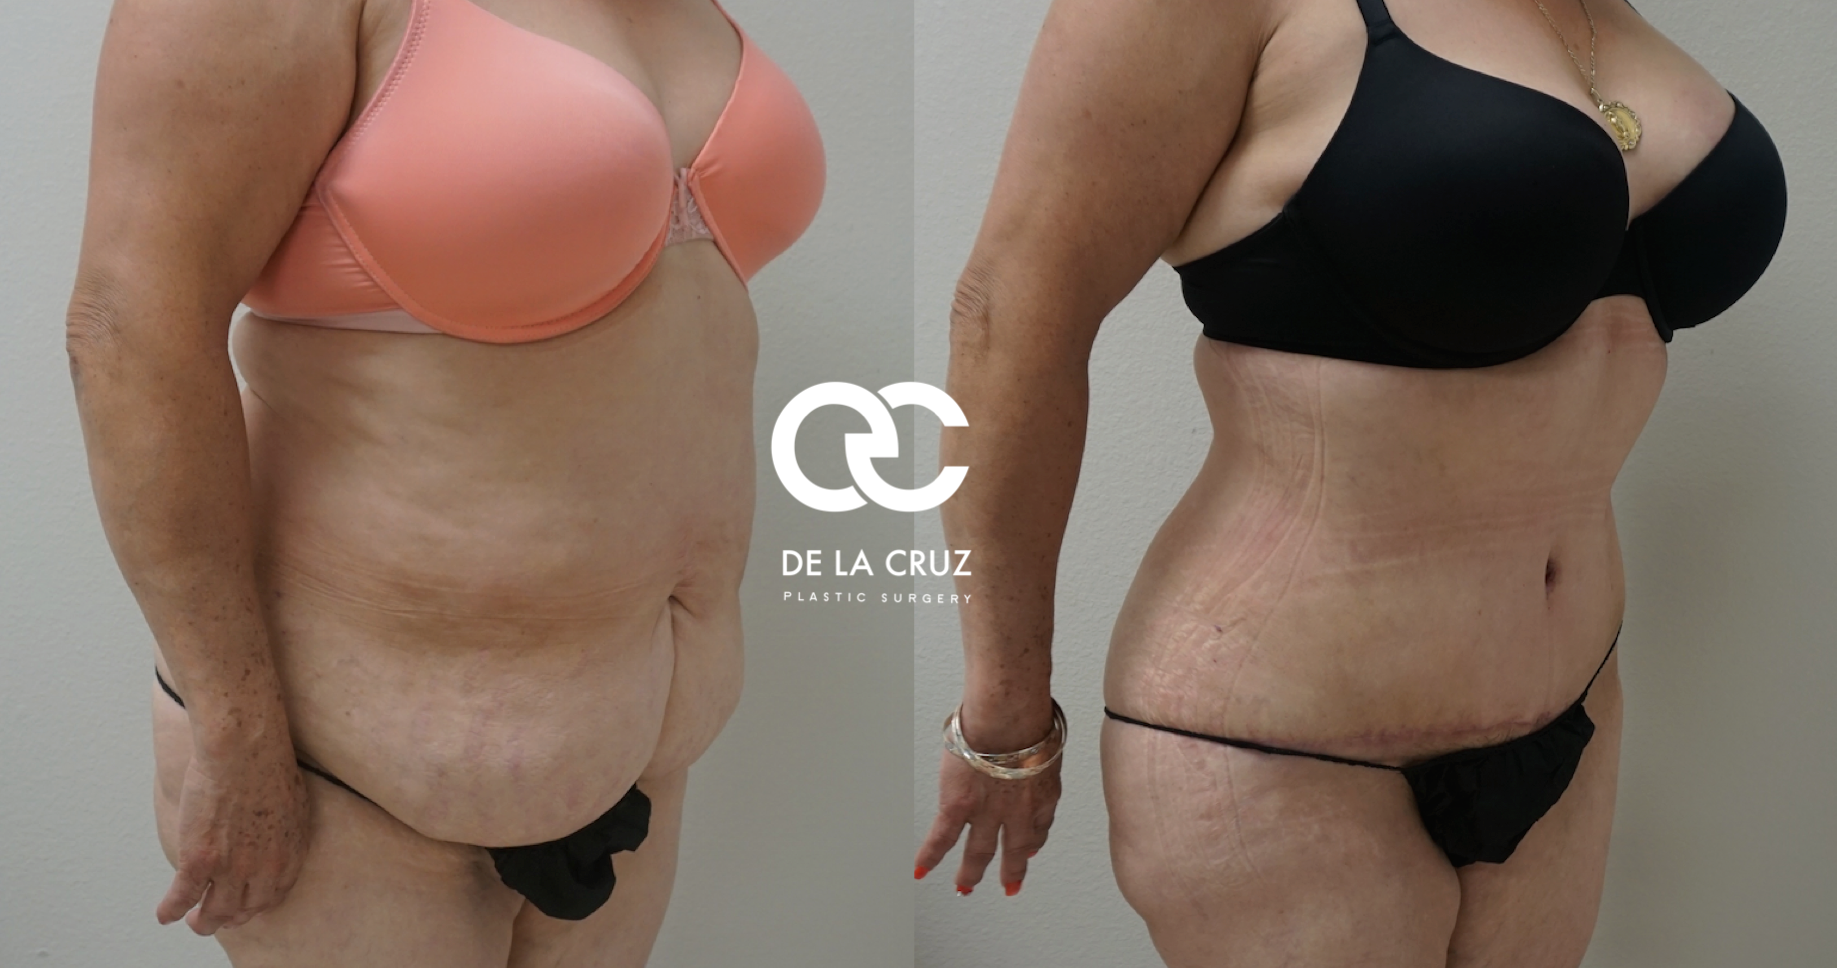 Before and After Photos of Abdominoplasty (Tummy Tuck) with VASER Liposuction of the back and flanks performed by Emmanuel De La Cruz MD